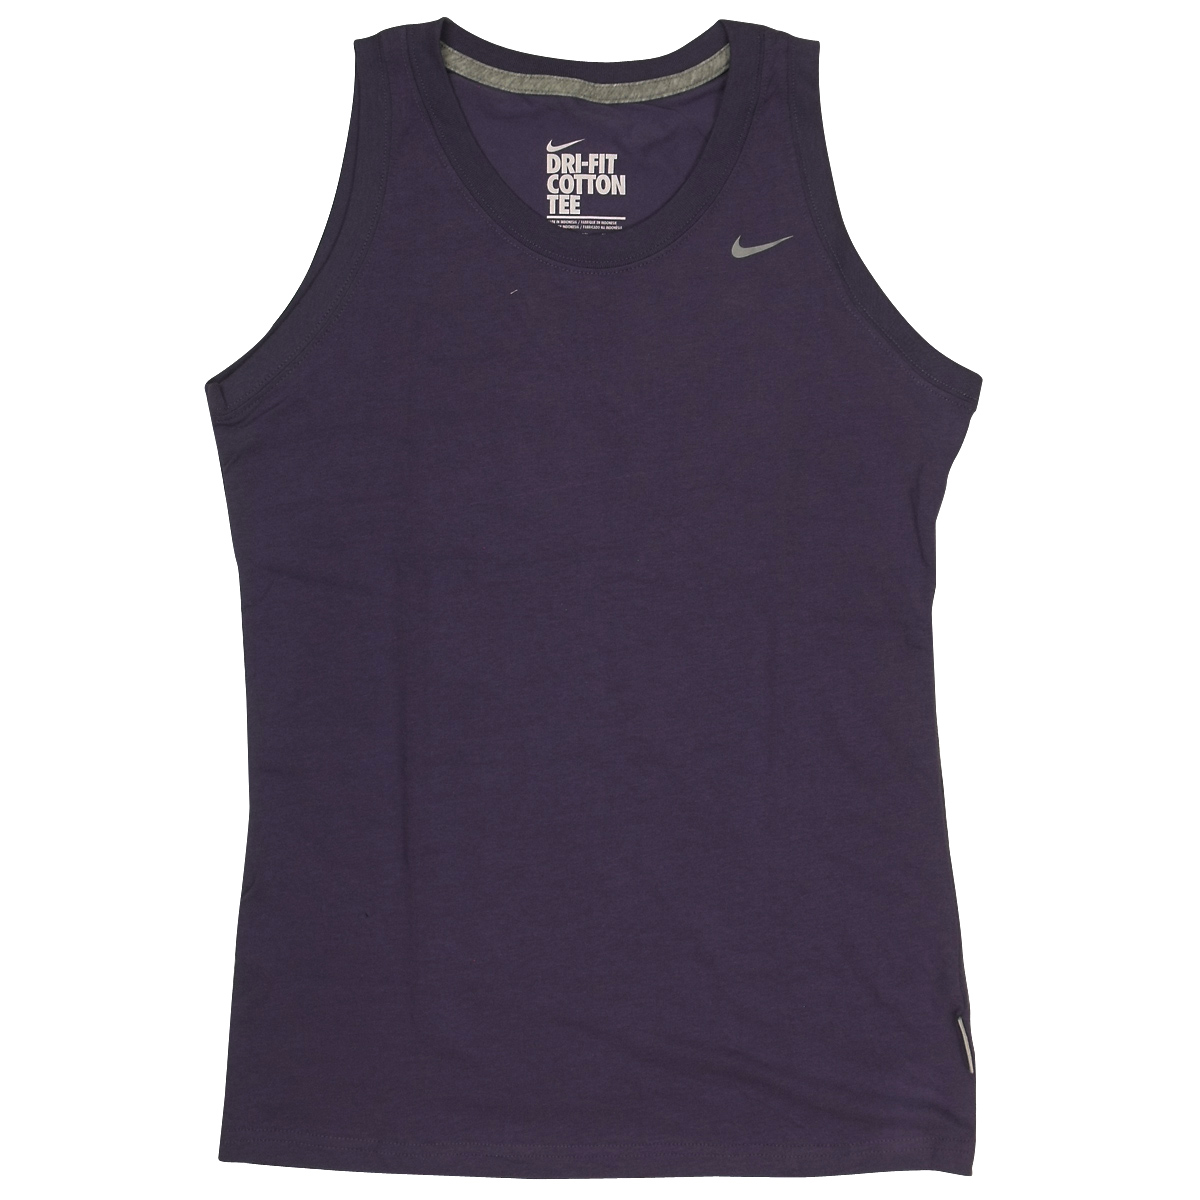 Nike women shirt dry dri fit running shirt vest top gym for Best athletic dress shirts